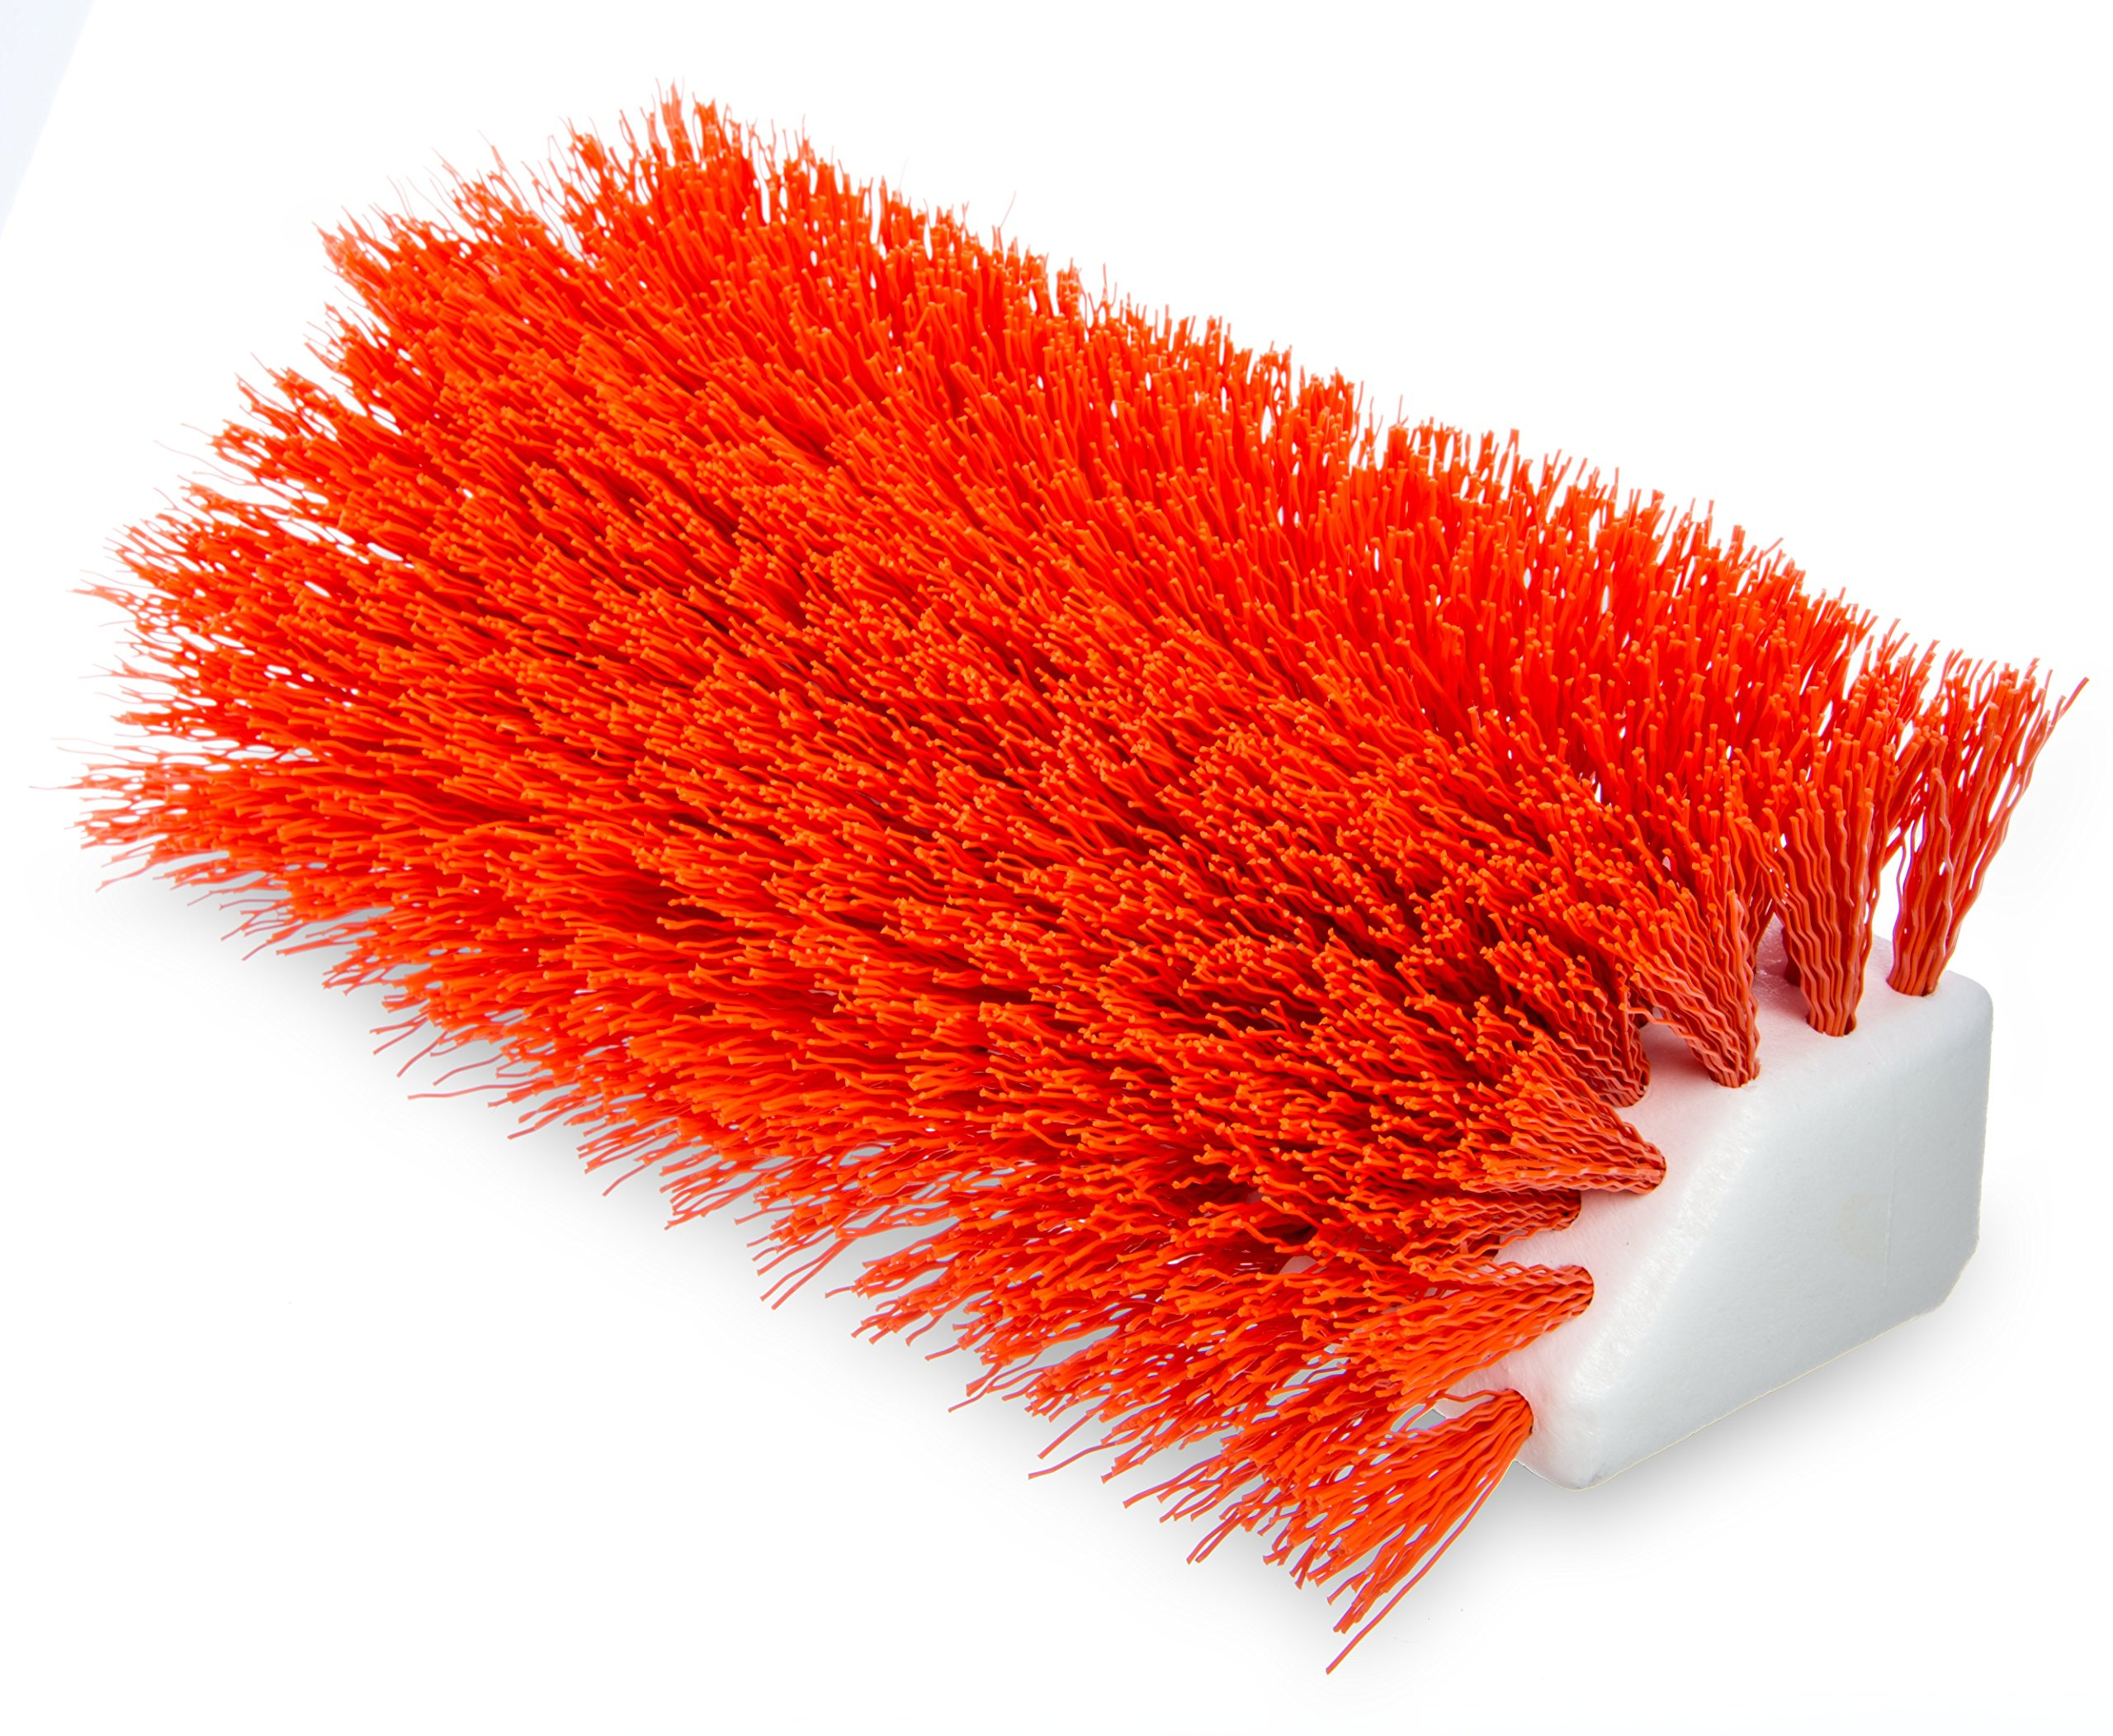 Carlisle 4042324 Hi-Lo Floor Scrub Brush, Orange (Pack of 12)